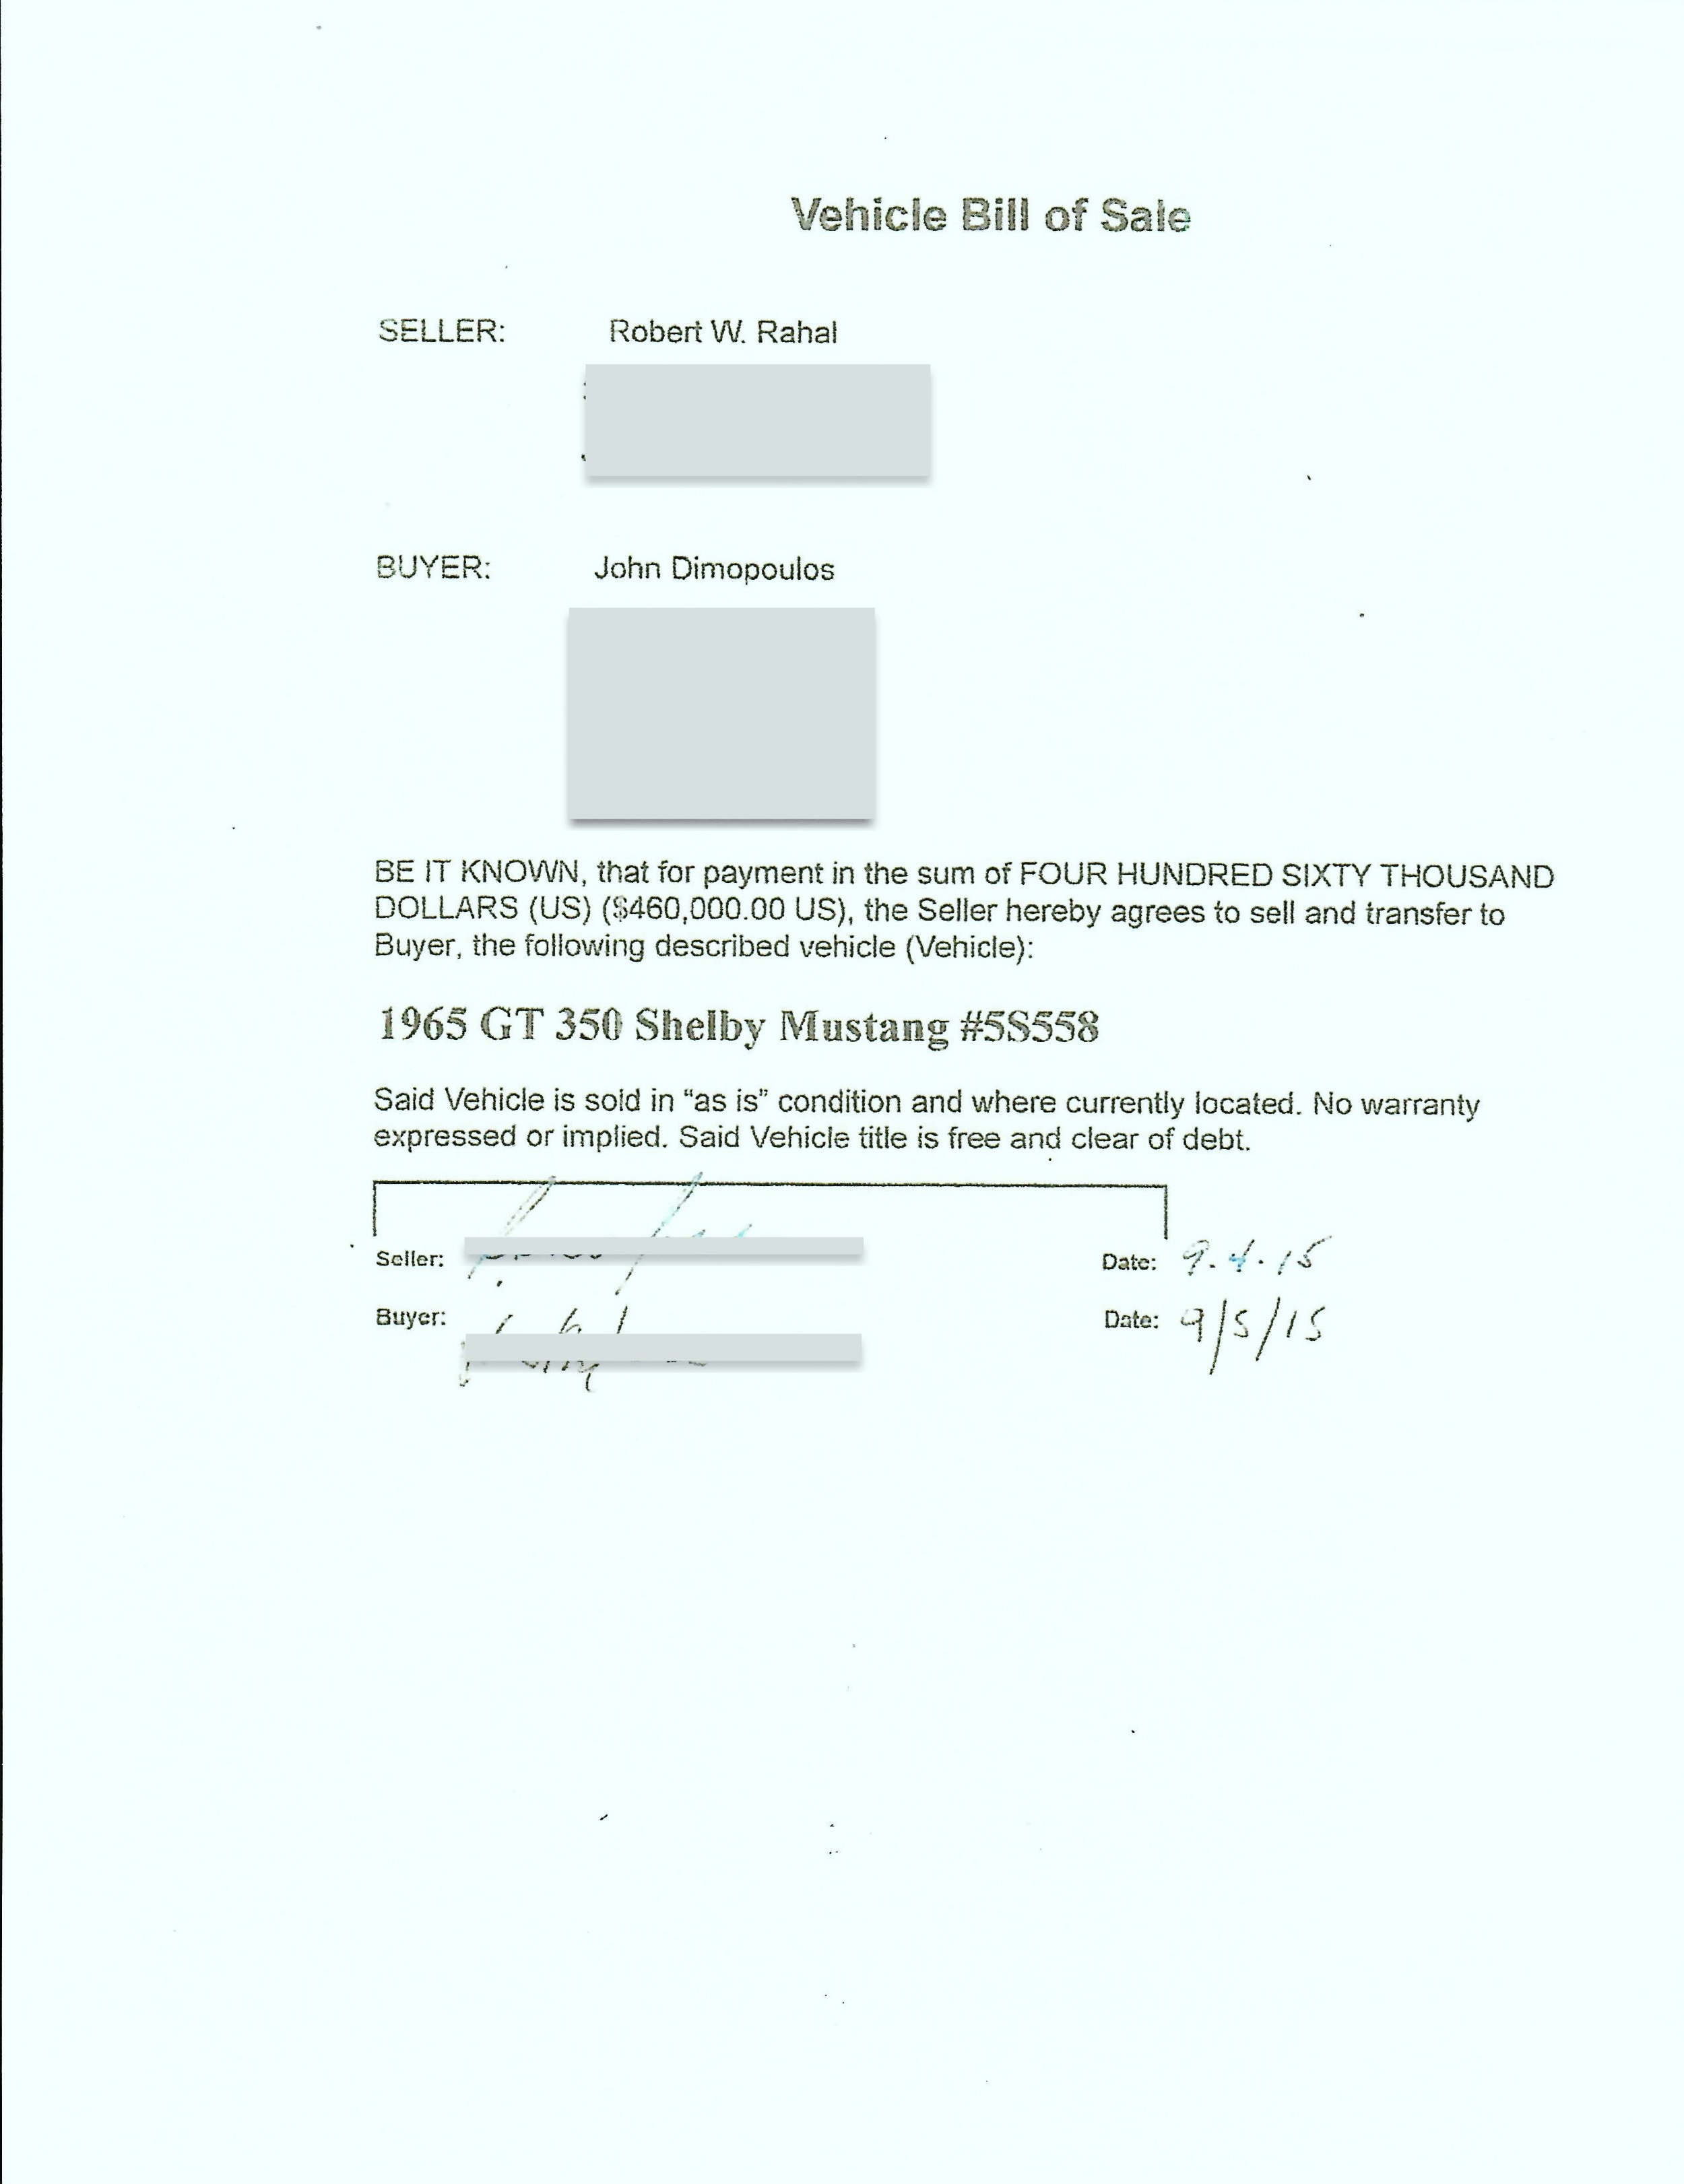 2015 Bill of Sale Rahal to Dimopoulos.jpeg